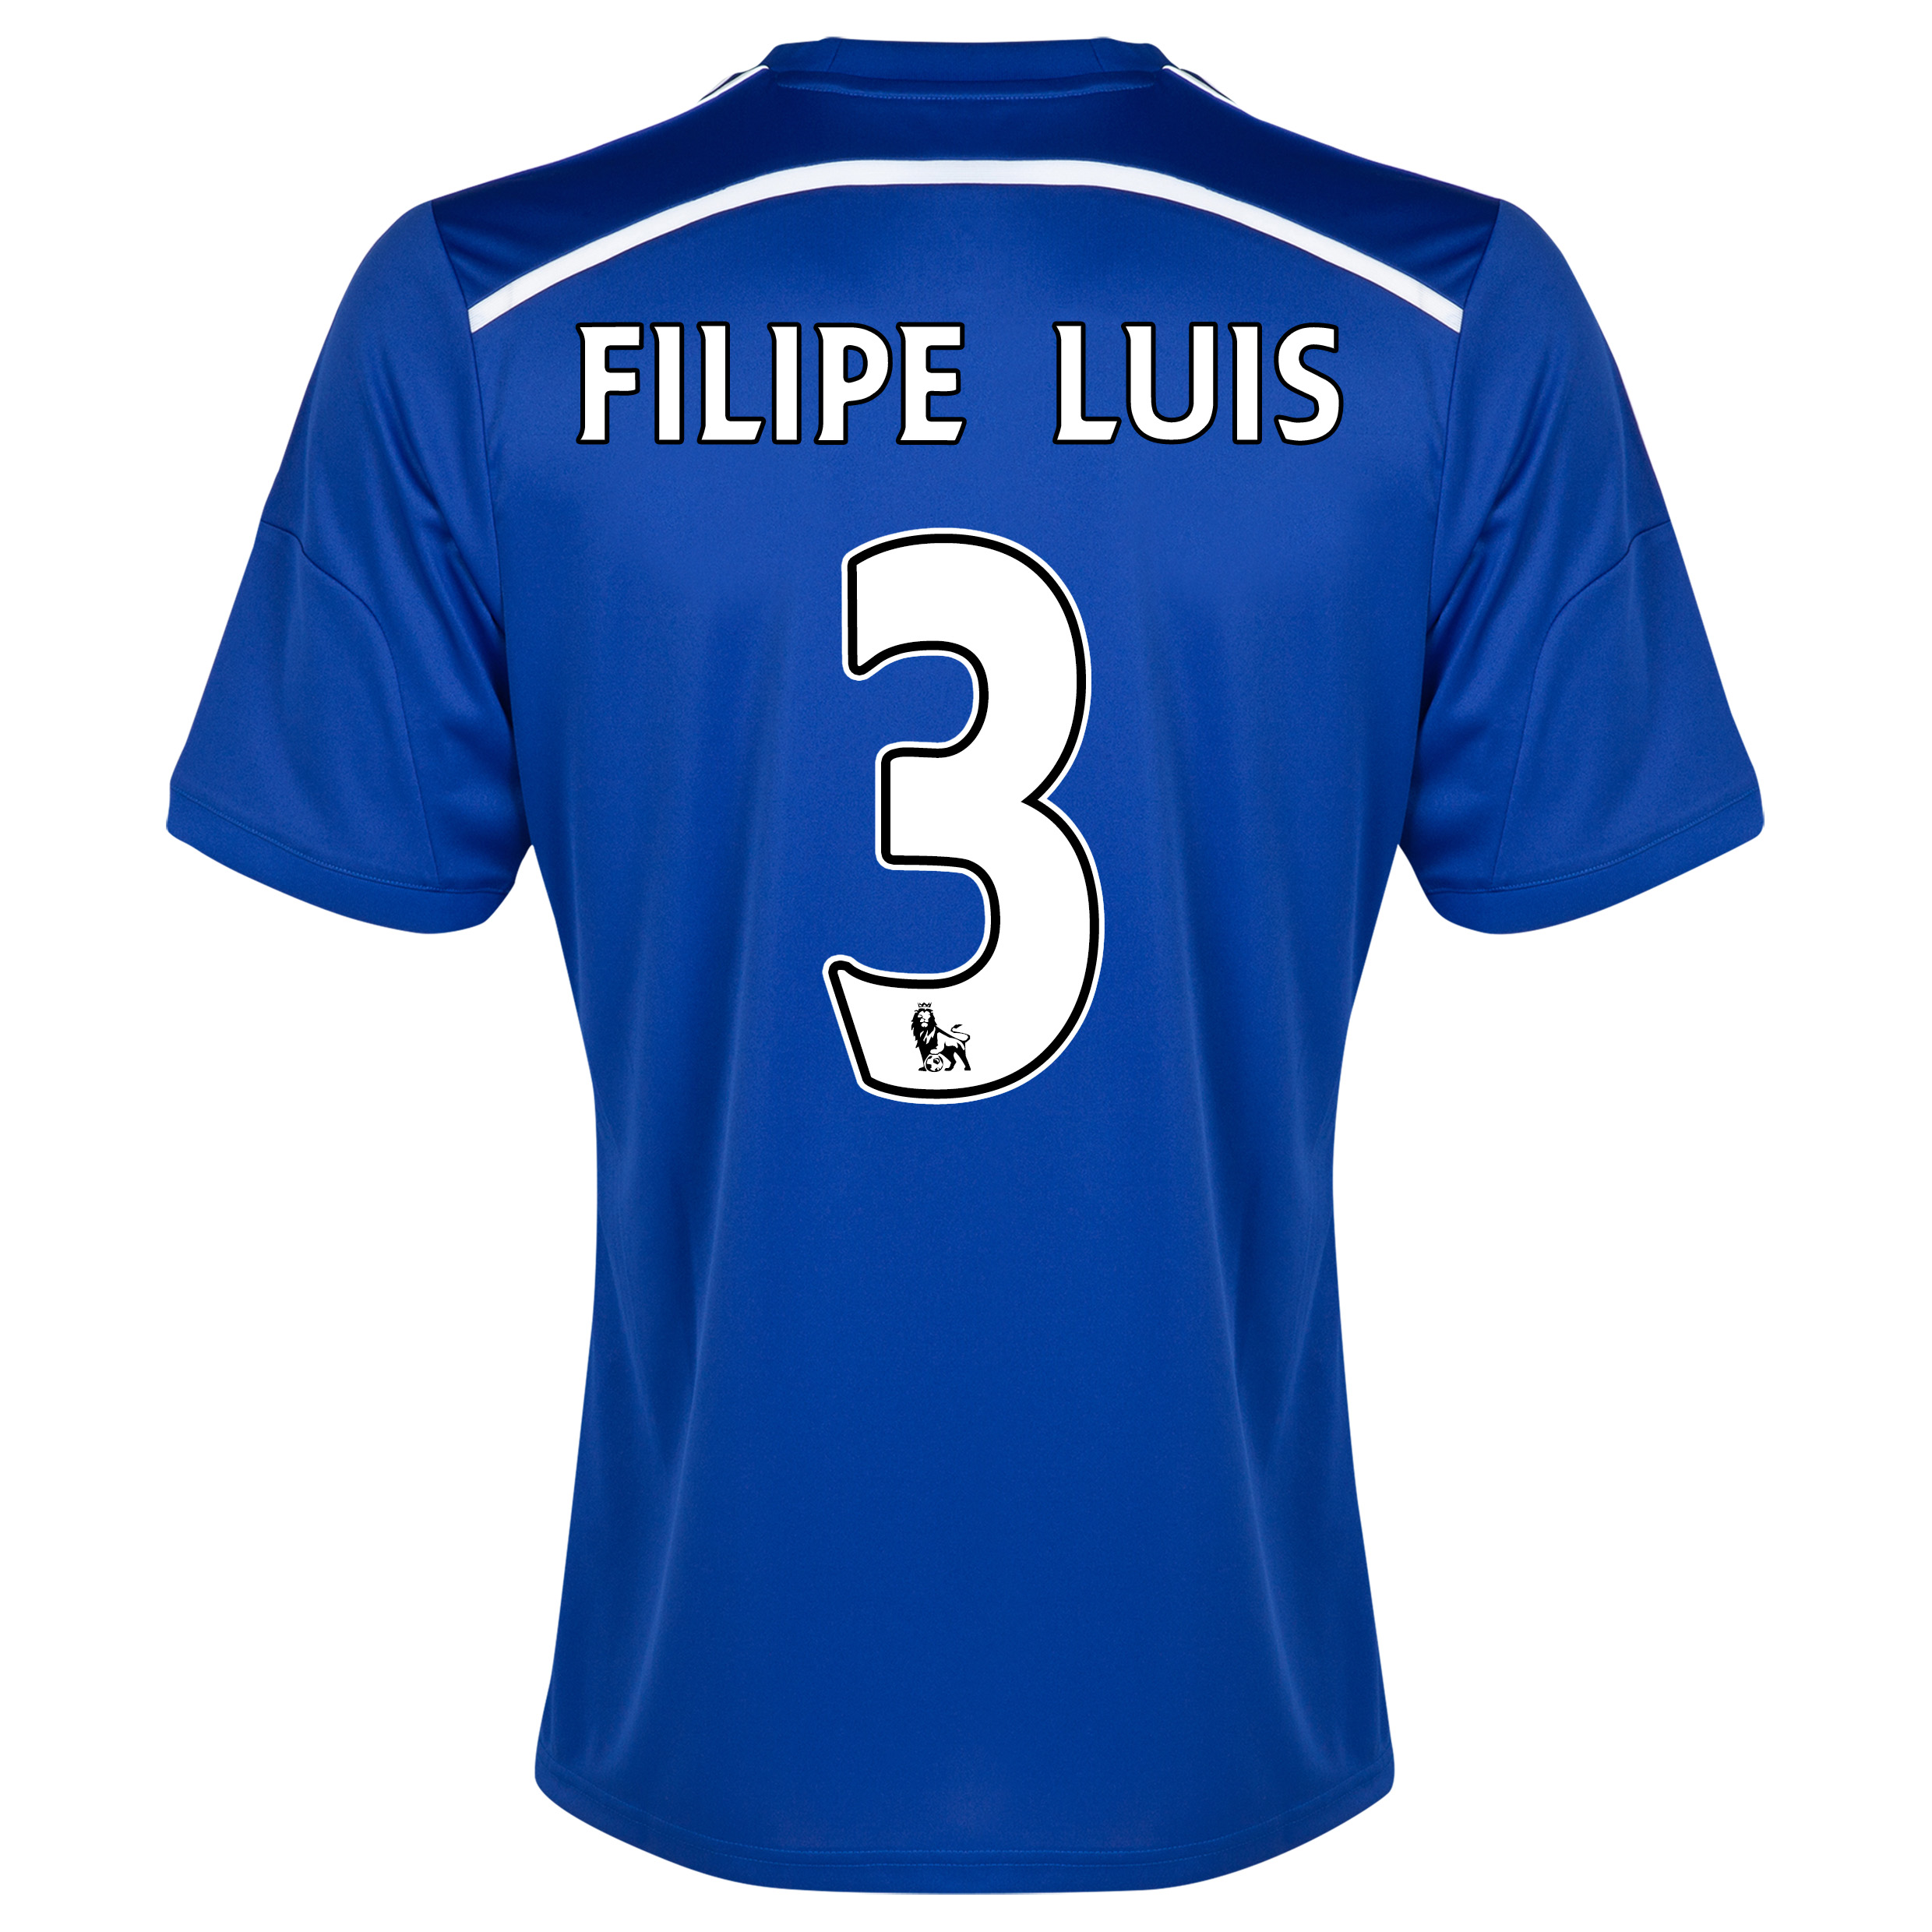 Chelsea Home Shirt 2014/15 with FILIPE LUIS 3 printing